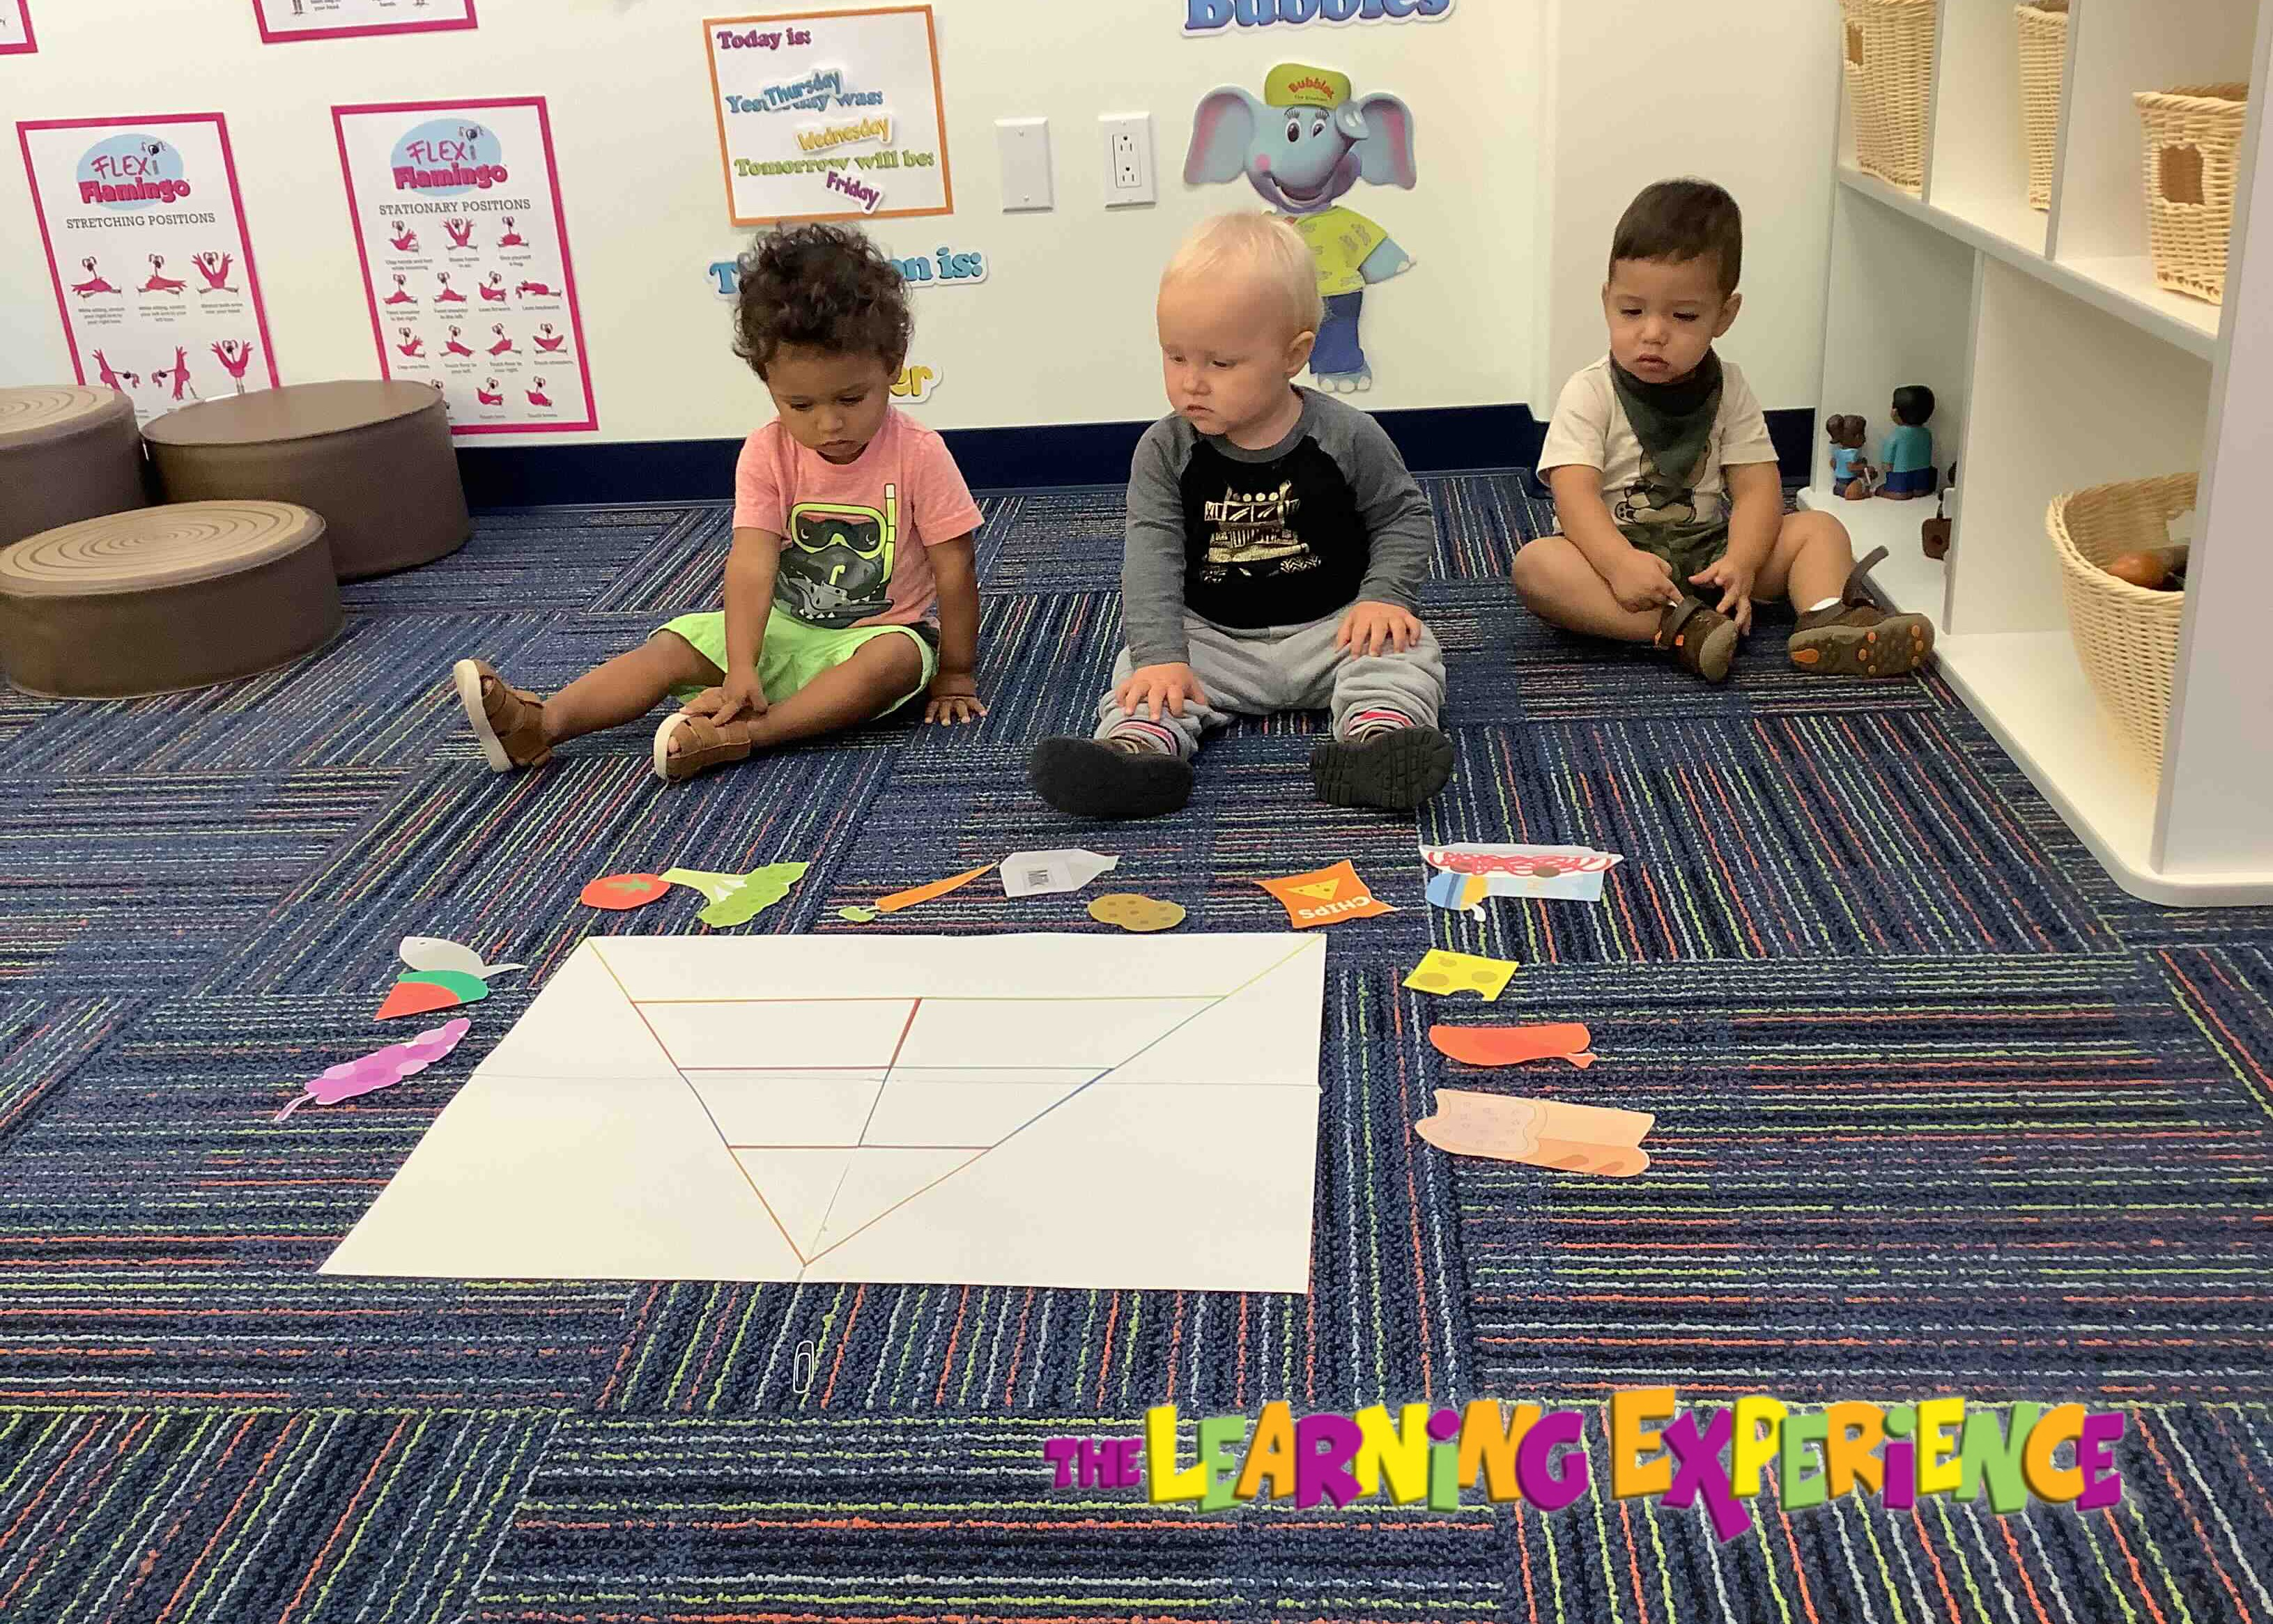 Heathly learning with our Toddlers